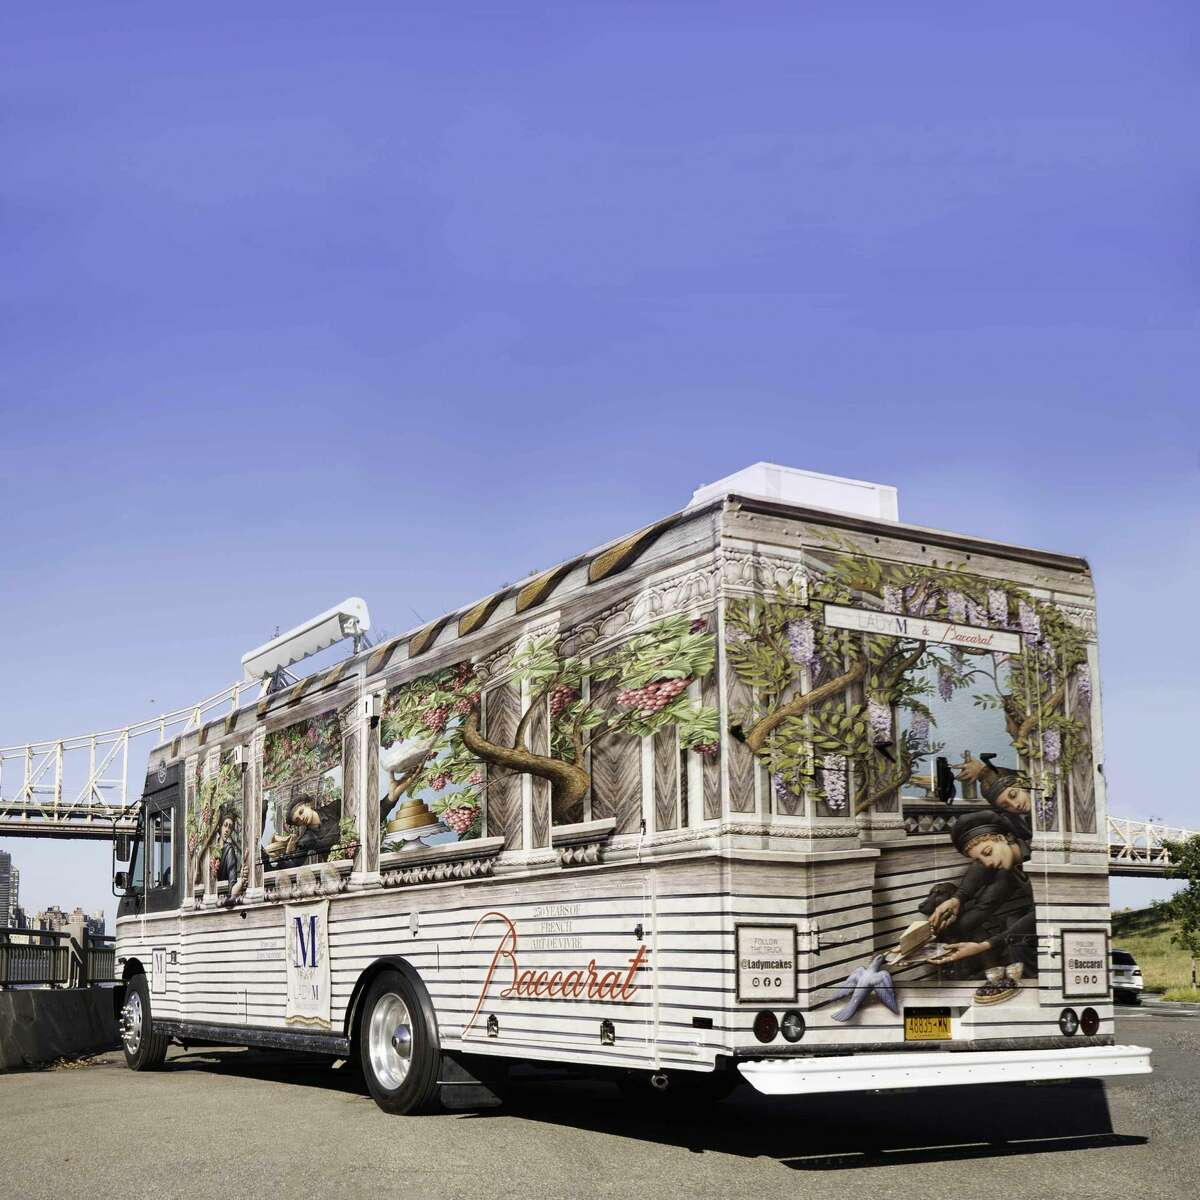 New York-based patisserie Lady M Cake Boutique and French crystal manufacturer Baccarat have teamed up to launch a luxury cake truck that hits the road in October, with Houston scheduled as its first stop, according to a Friday release.